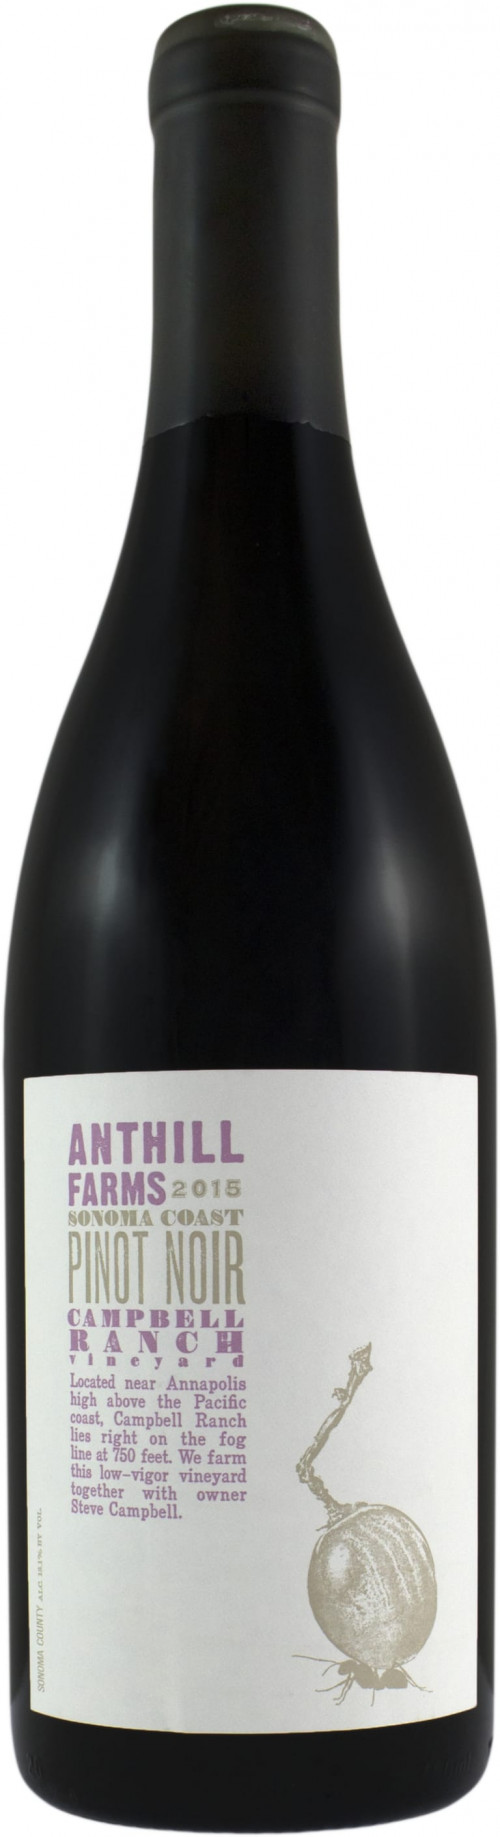 2015 Anthill Farms Sonoma Pinot Noir 750ml